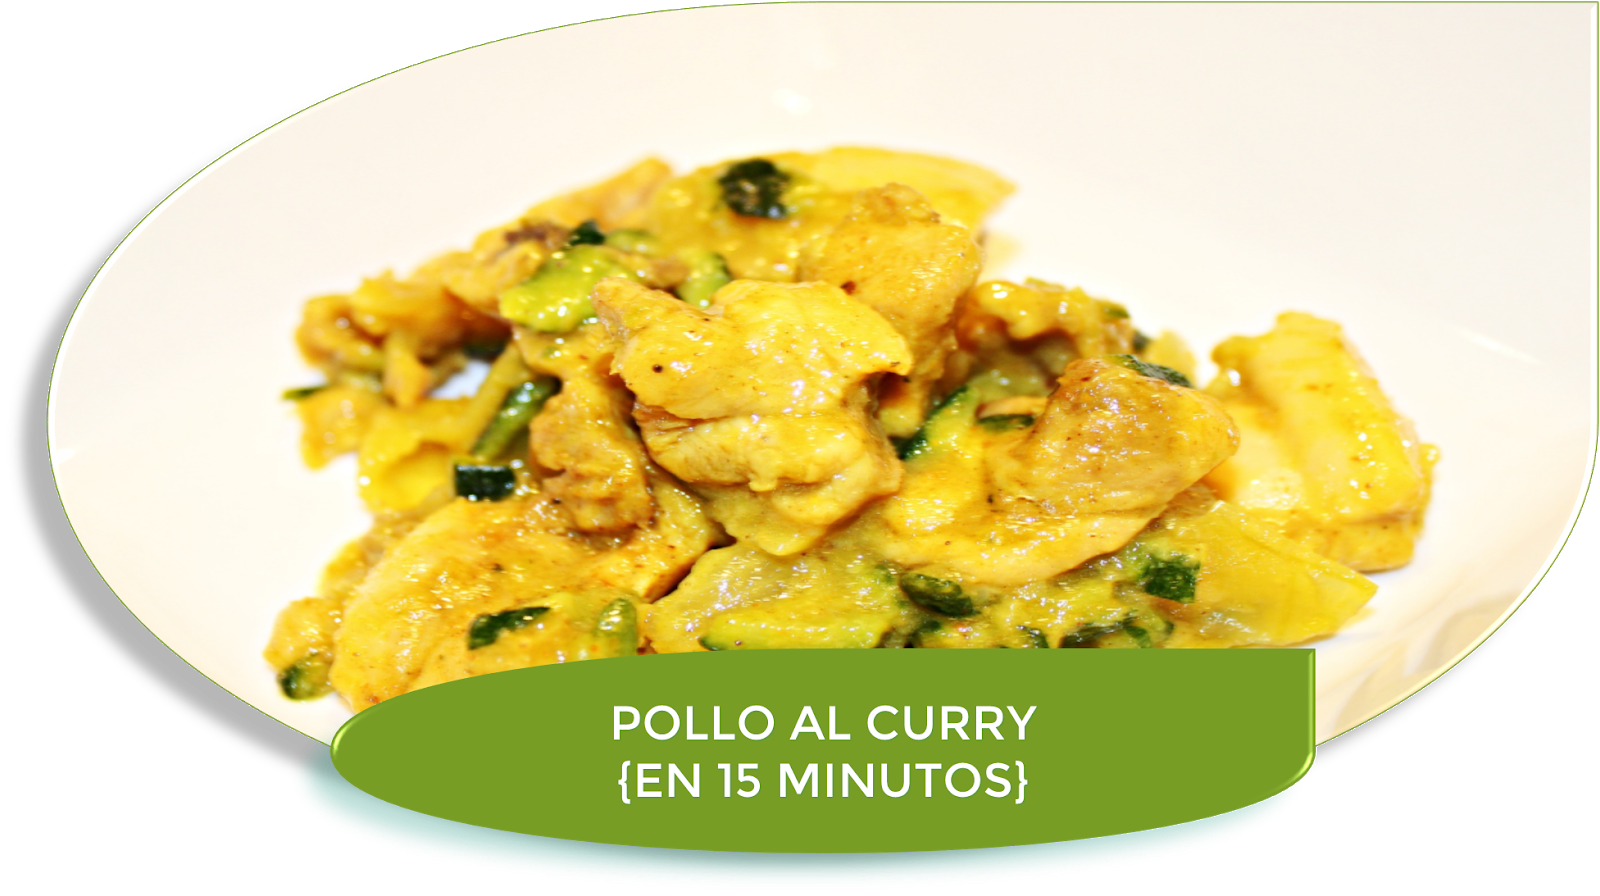 POLLO AL CURRY EN 15 MINUTOS {CON THERMOMIX}